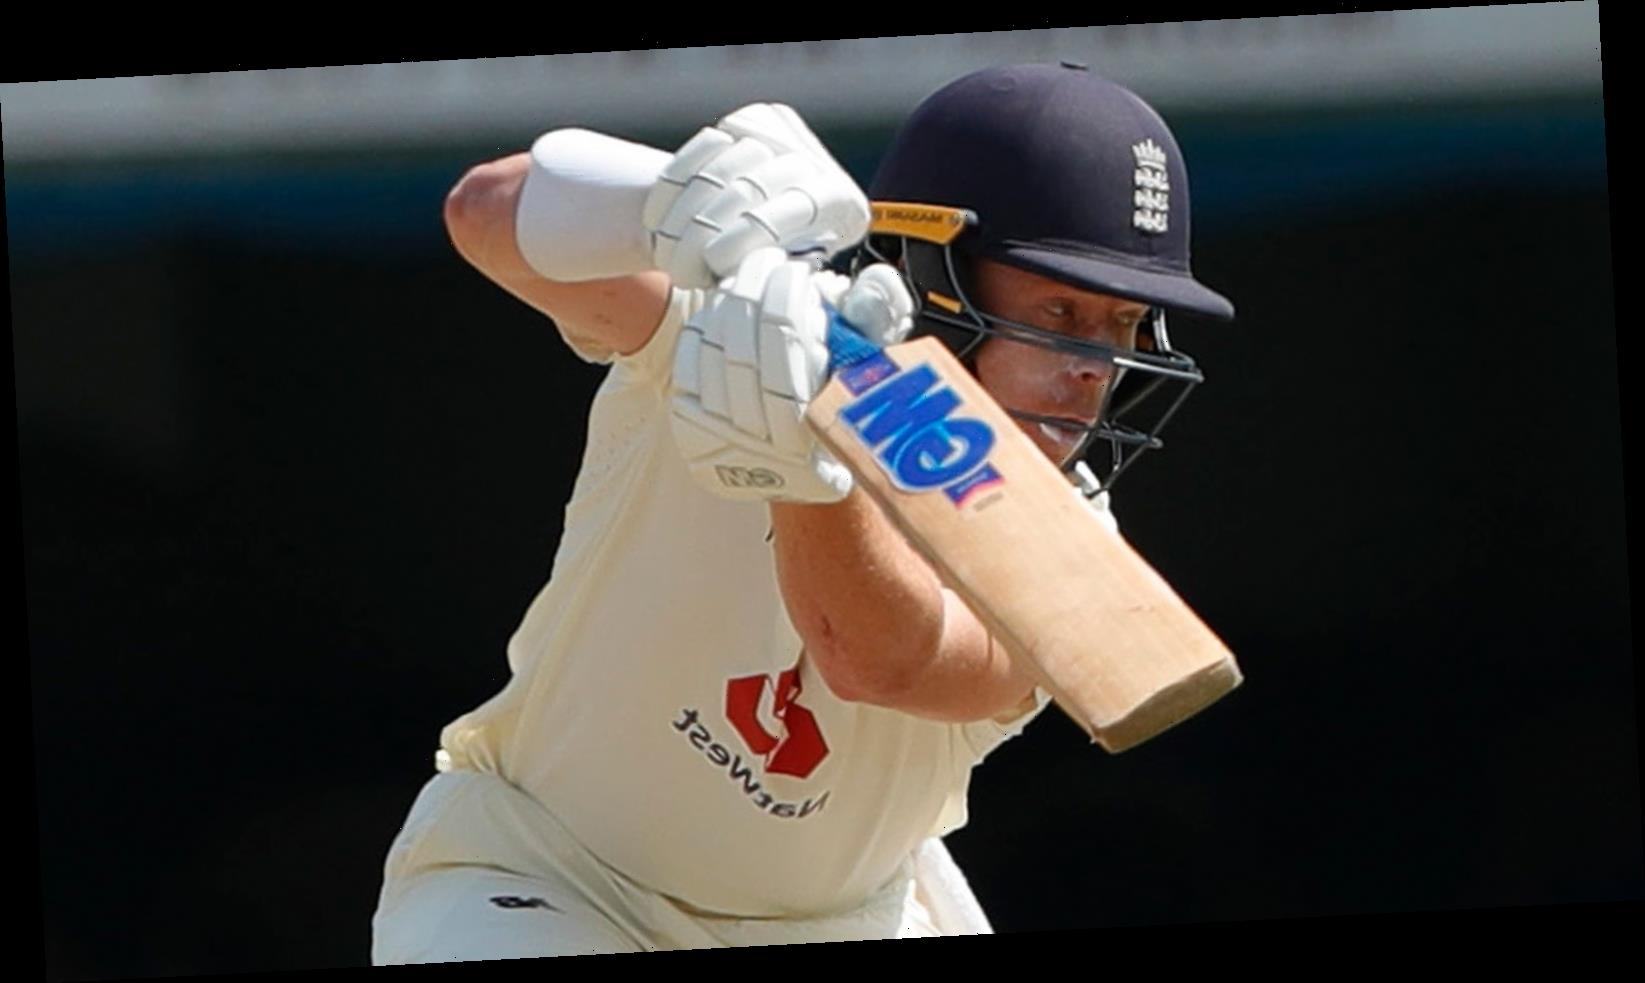 England batsmen need to move past India struggles quickly and focus on progress under Chris Silverwood